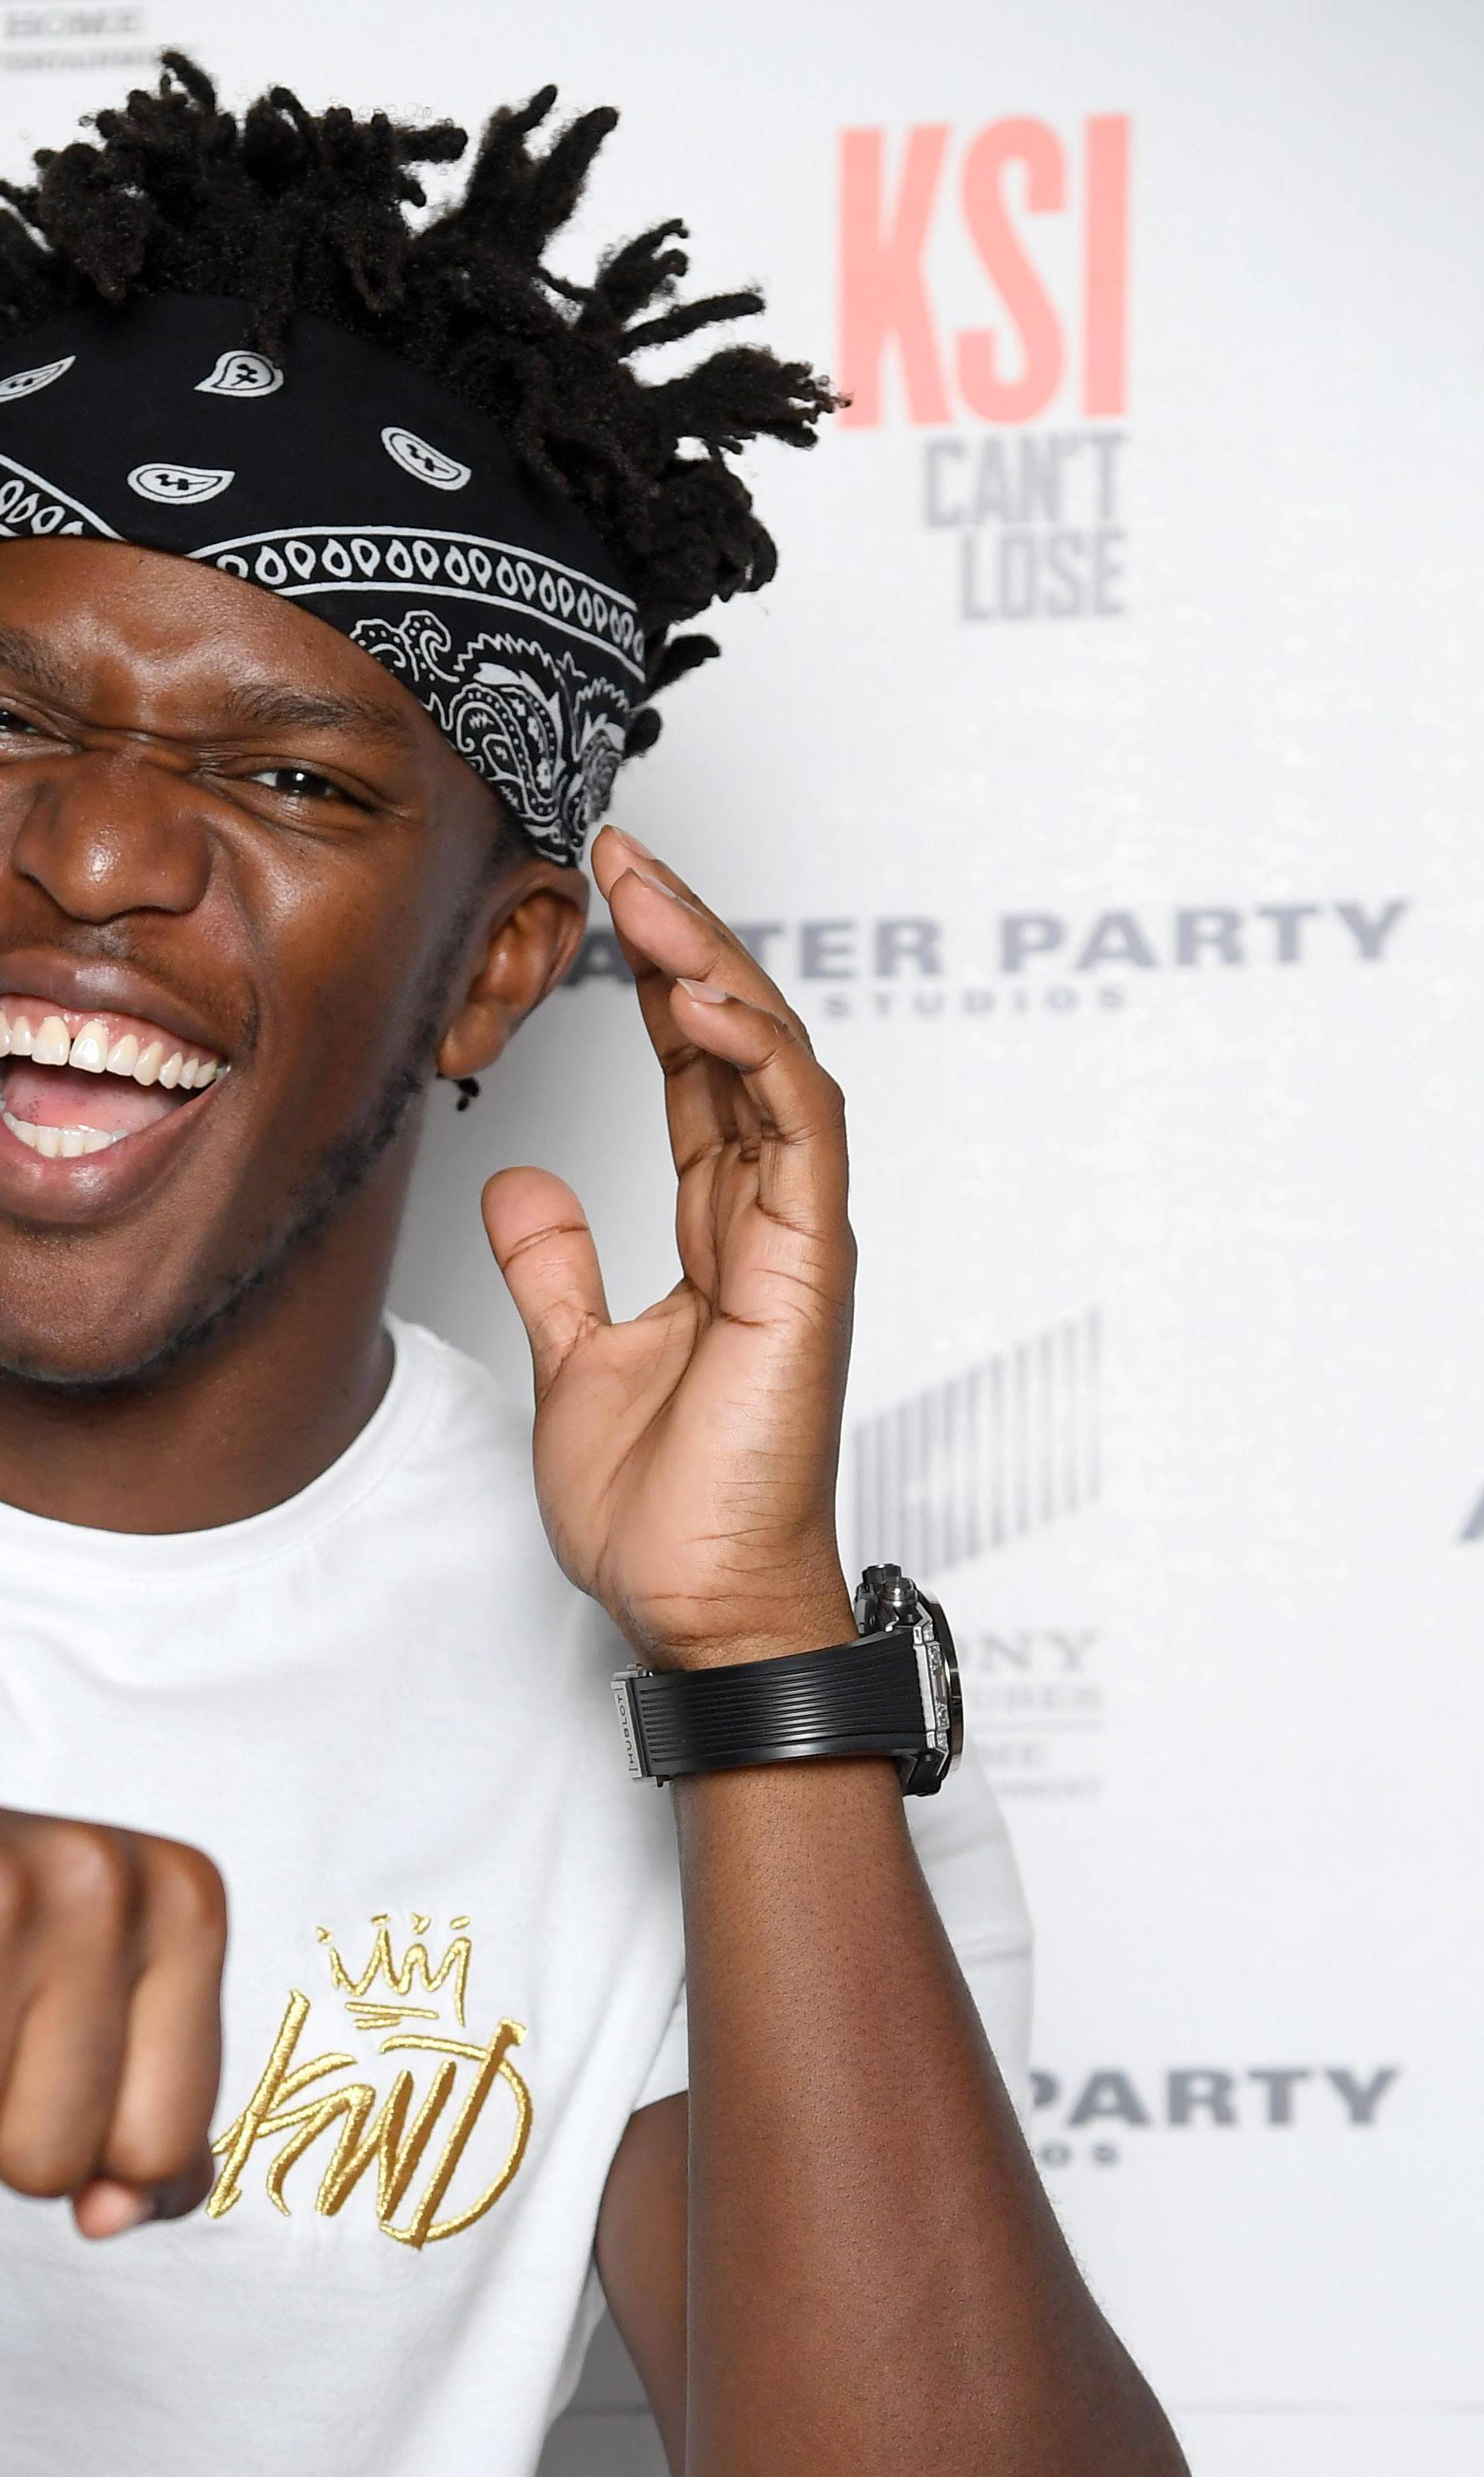 'KSI: Can't Lose' Documentary World Premiere - Arrivals